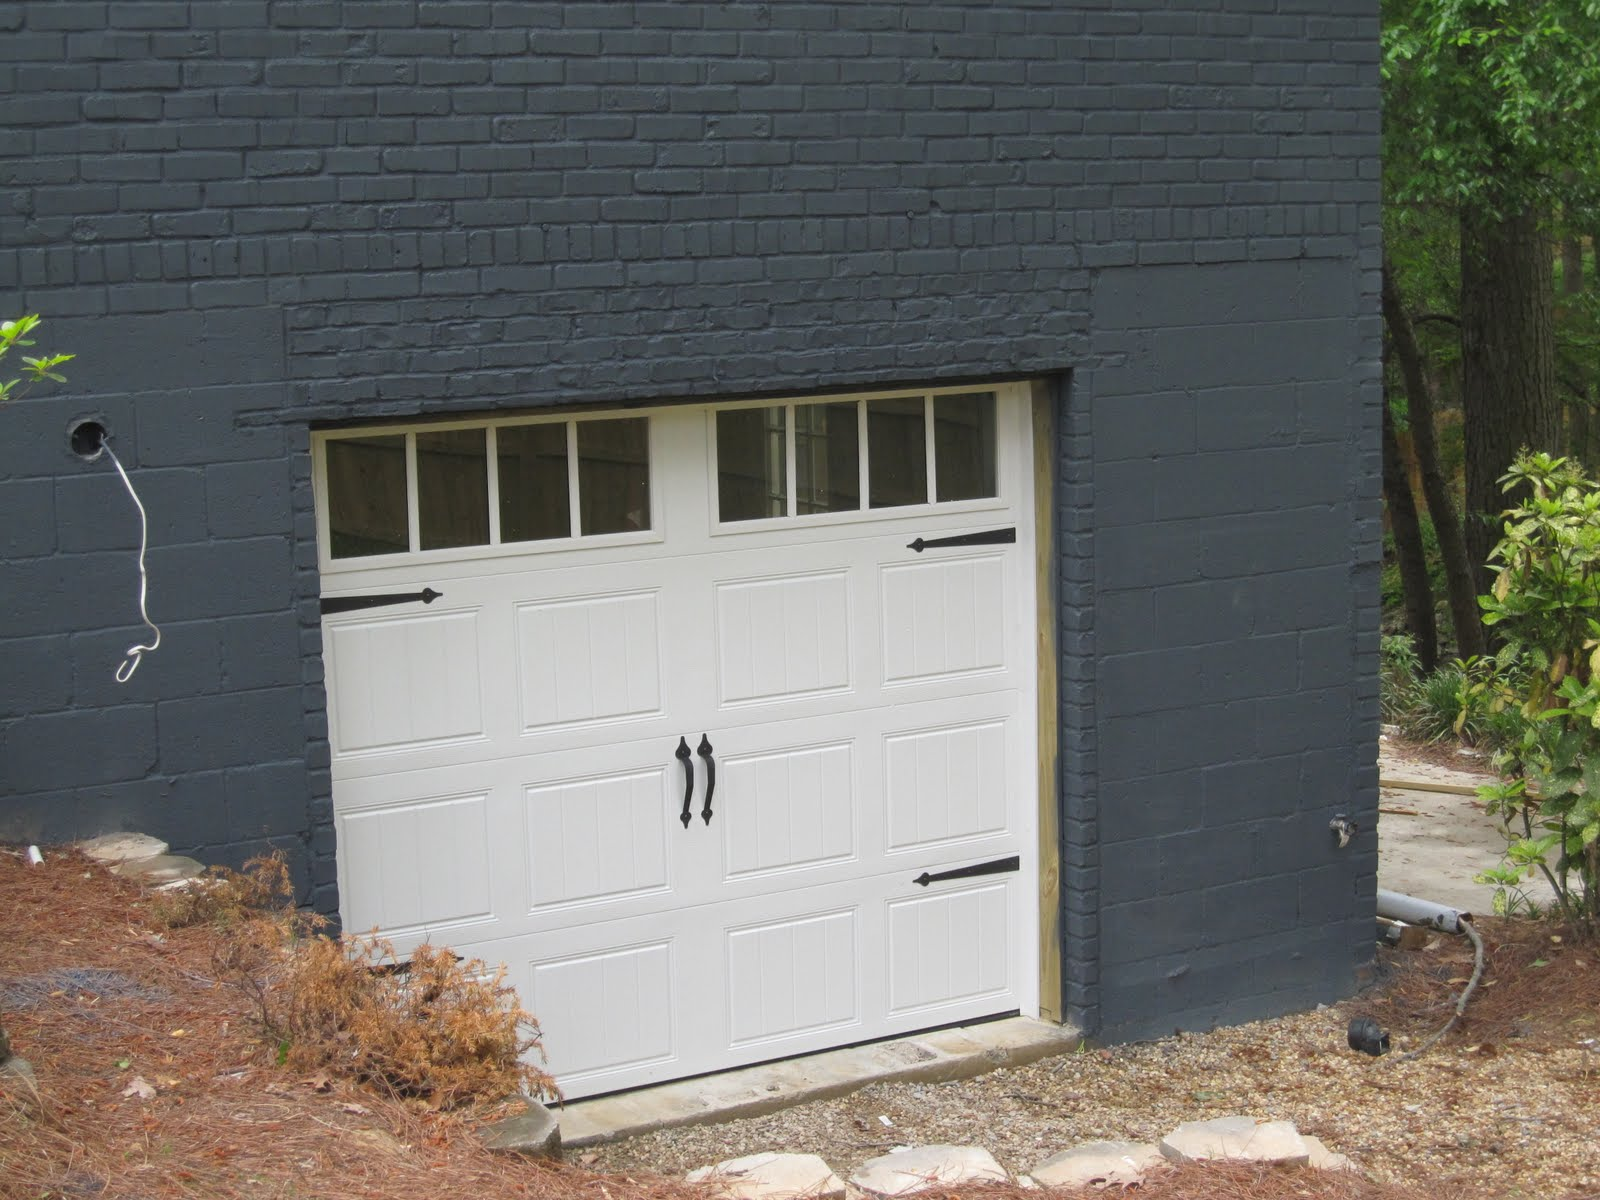 1200 #496130 Brookhaven Renovation: Happenings At The New House pic Best Garage Doors Consumer Reports 39411600